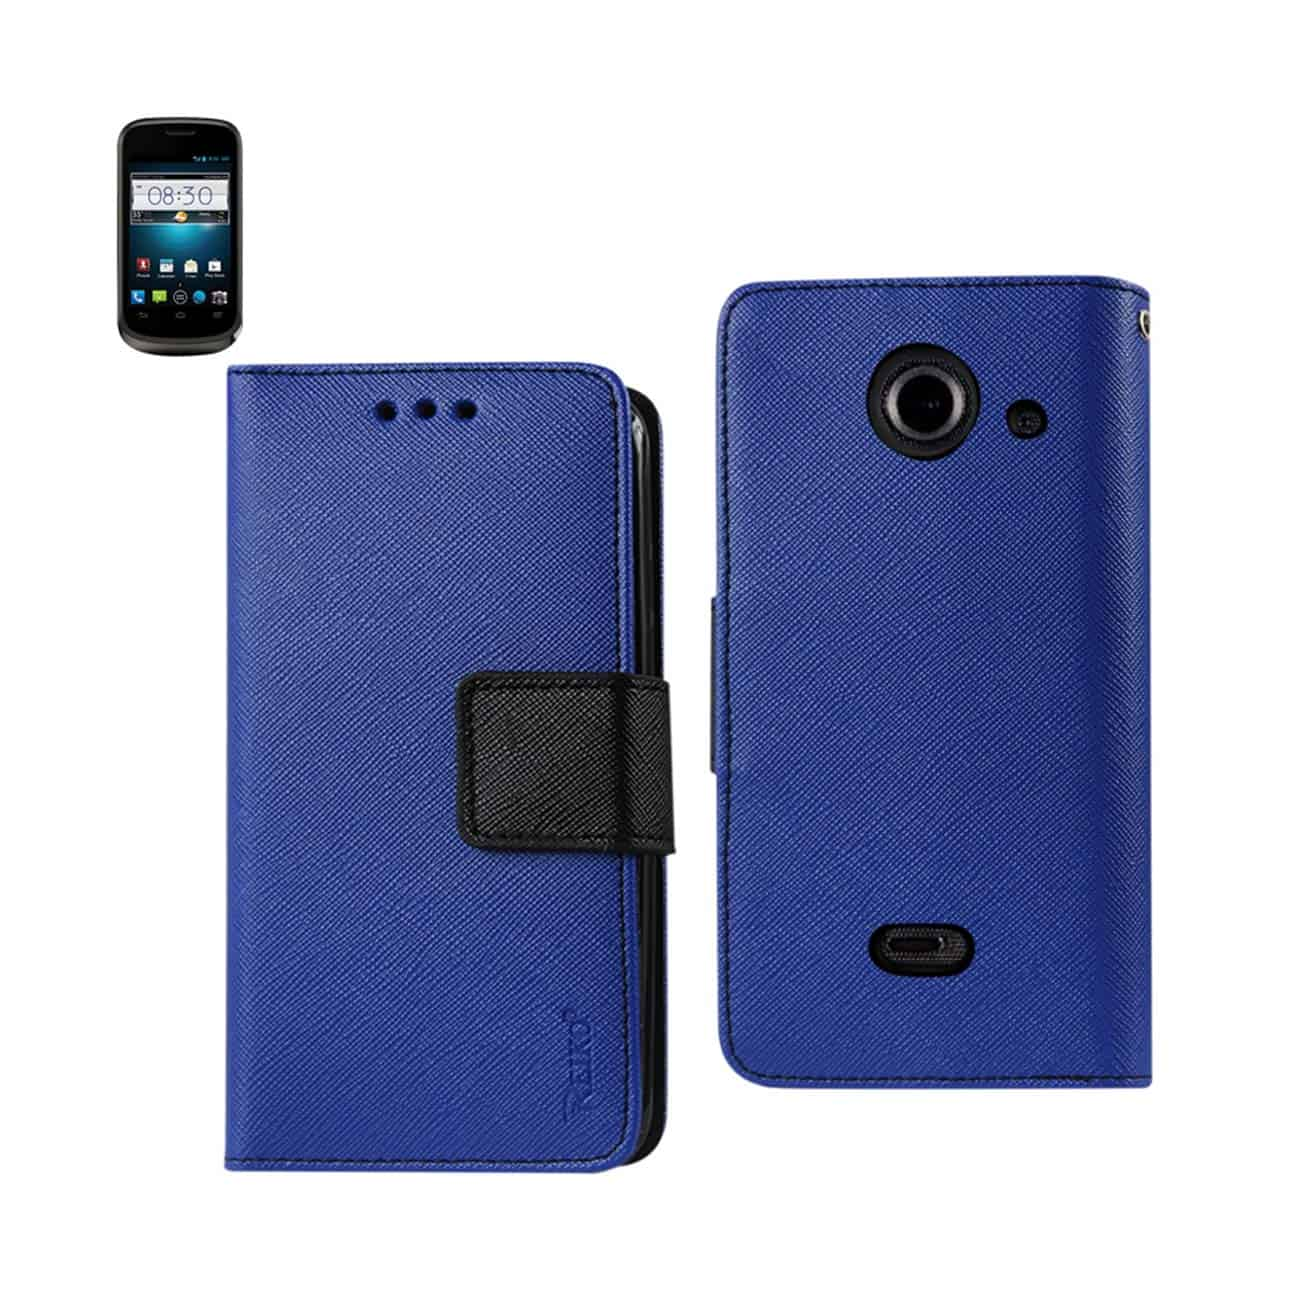 ZTE PRELUDE 2 3-IN-1 WALLET CASE IN NAVY